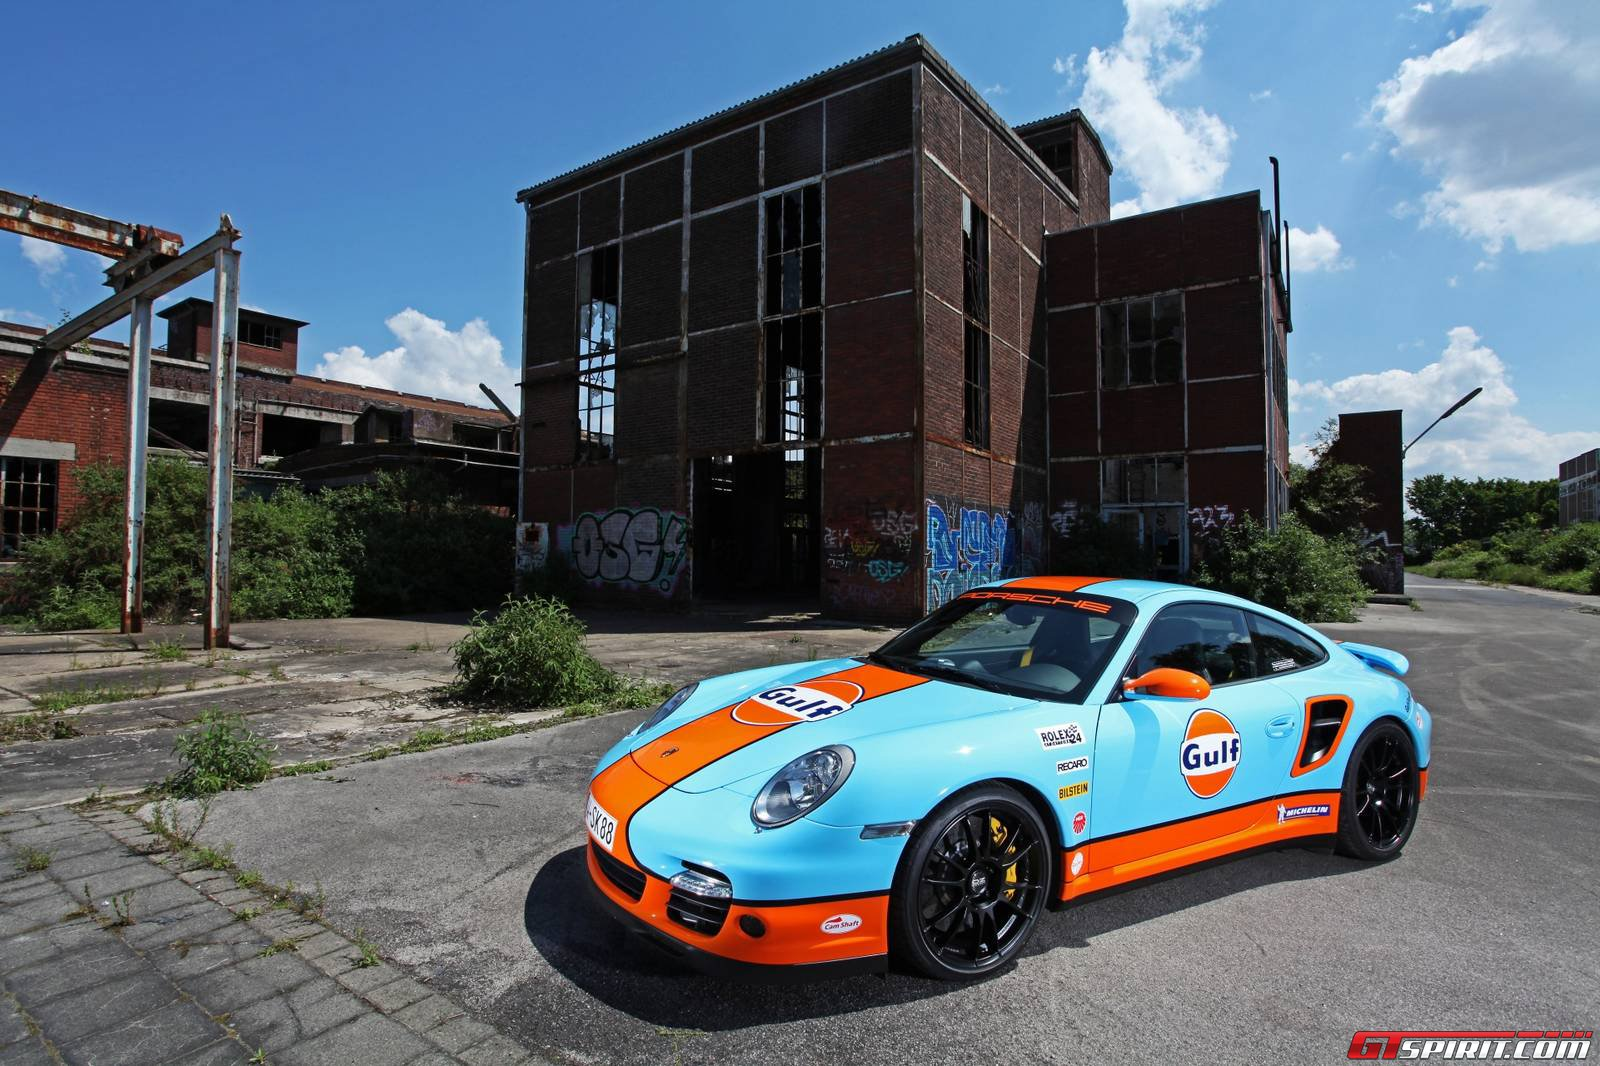 Porsche 911 Turbo Wrapped In Gulf Livery